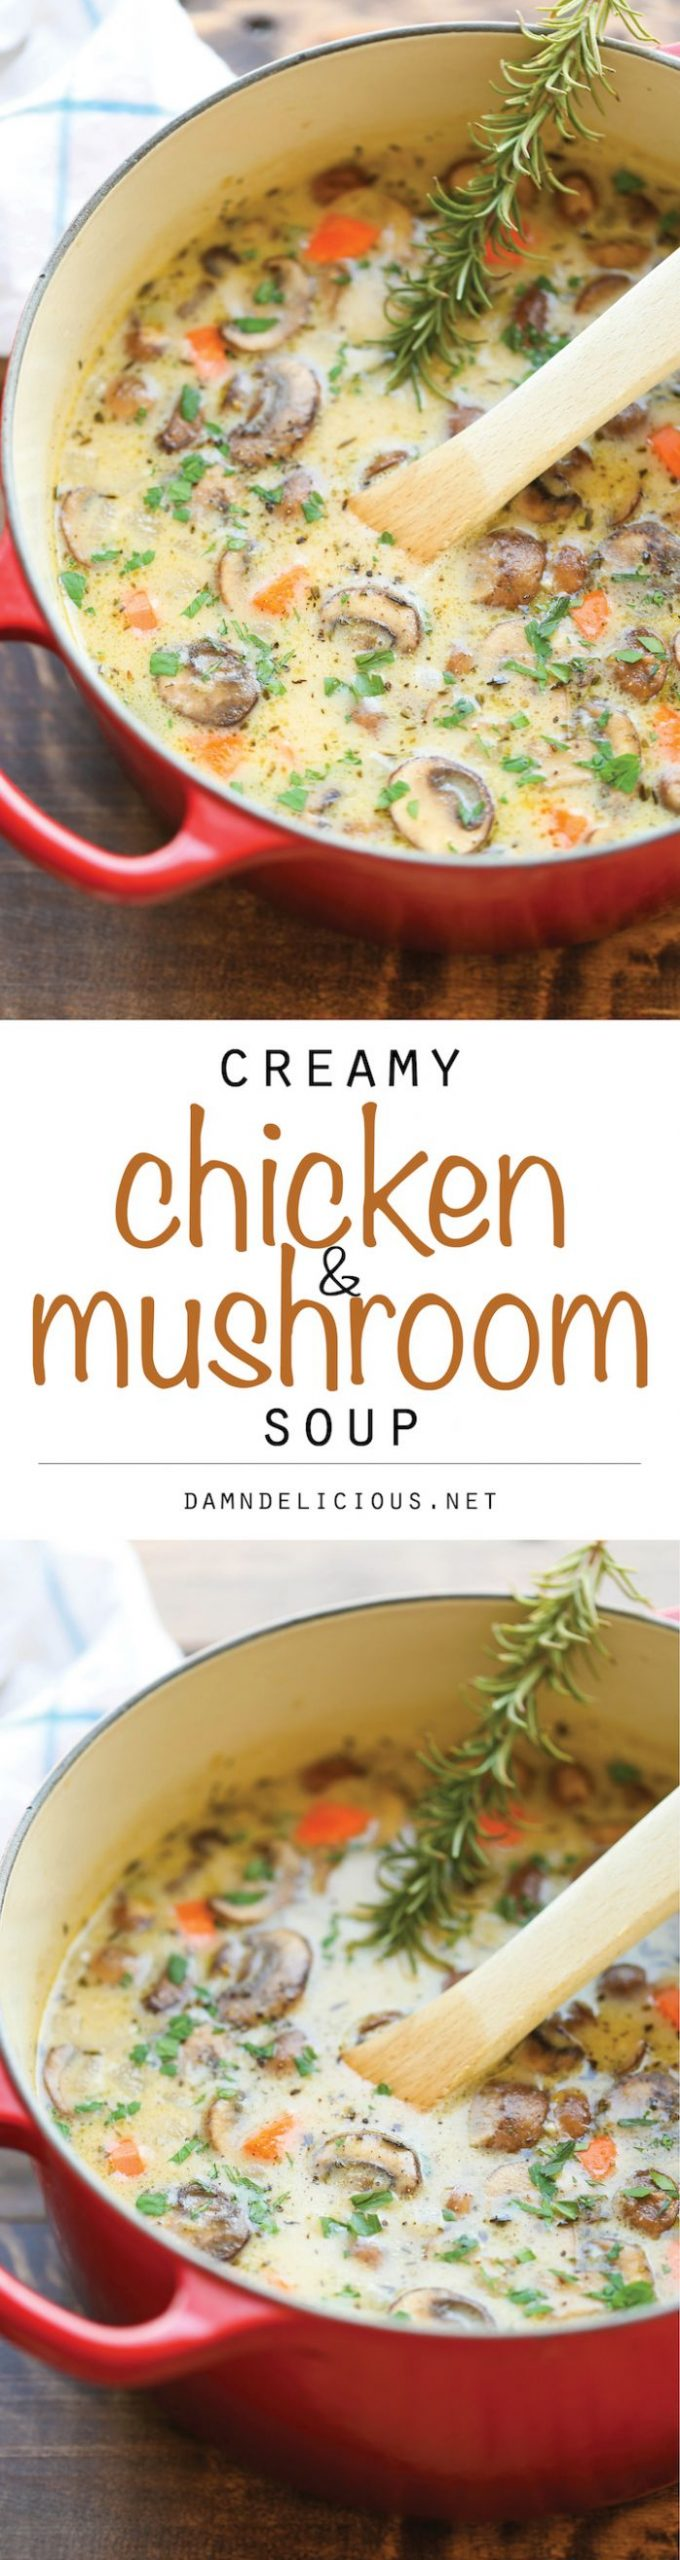 Creamy Chicken and Mushroom Soup - Soup Recipes Damn Delicious